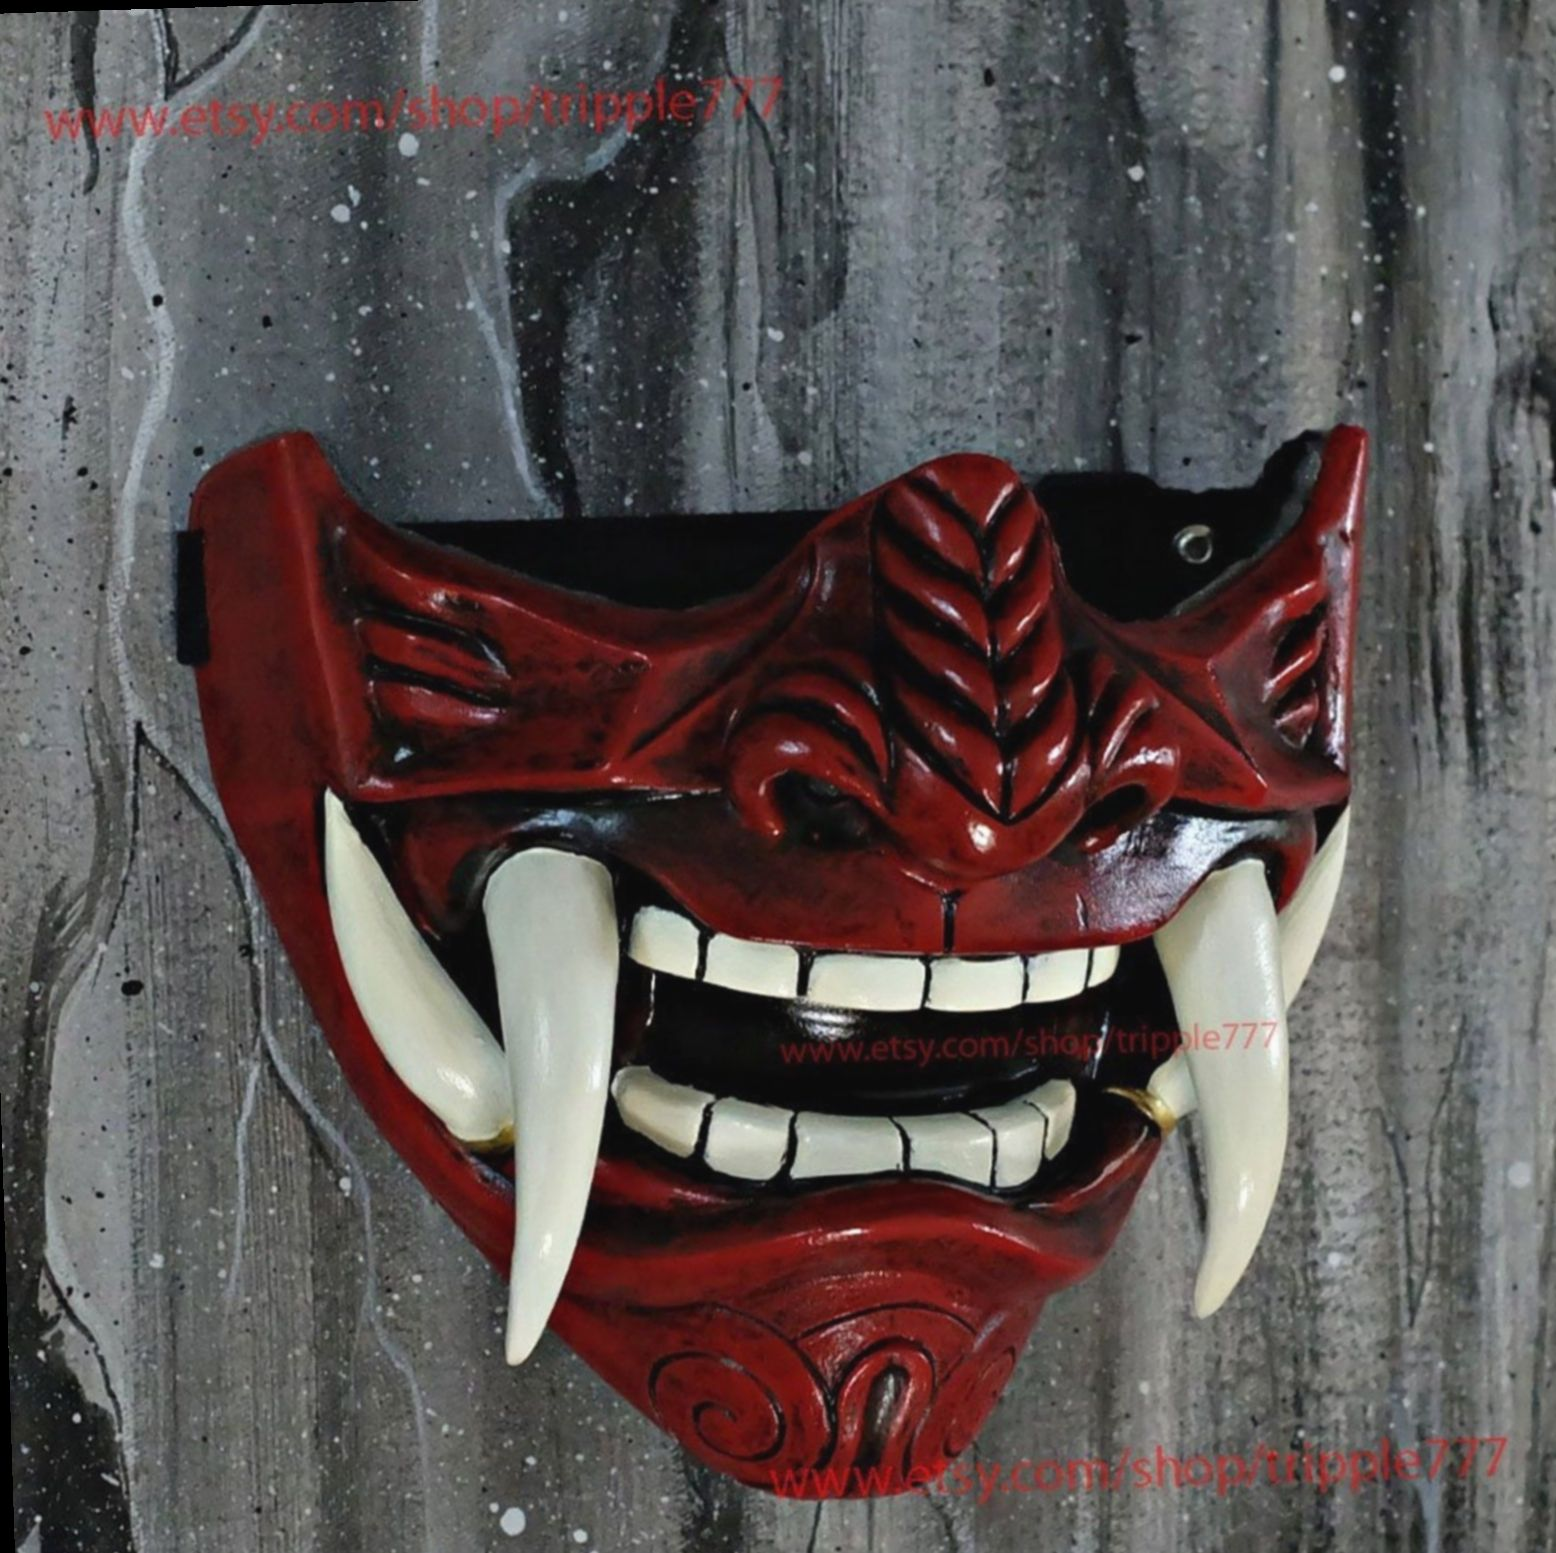 17 Anime Face Mask Art Oni Samurai Mask Drawing Japanese Demon Mask